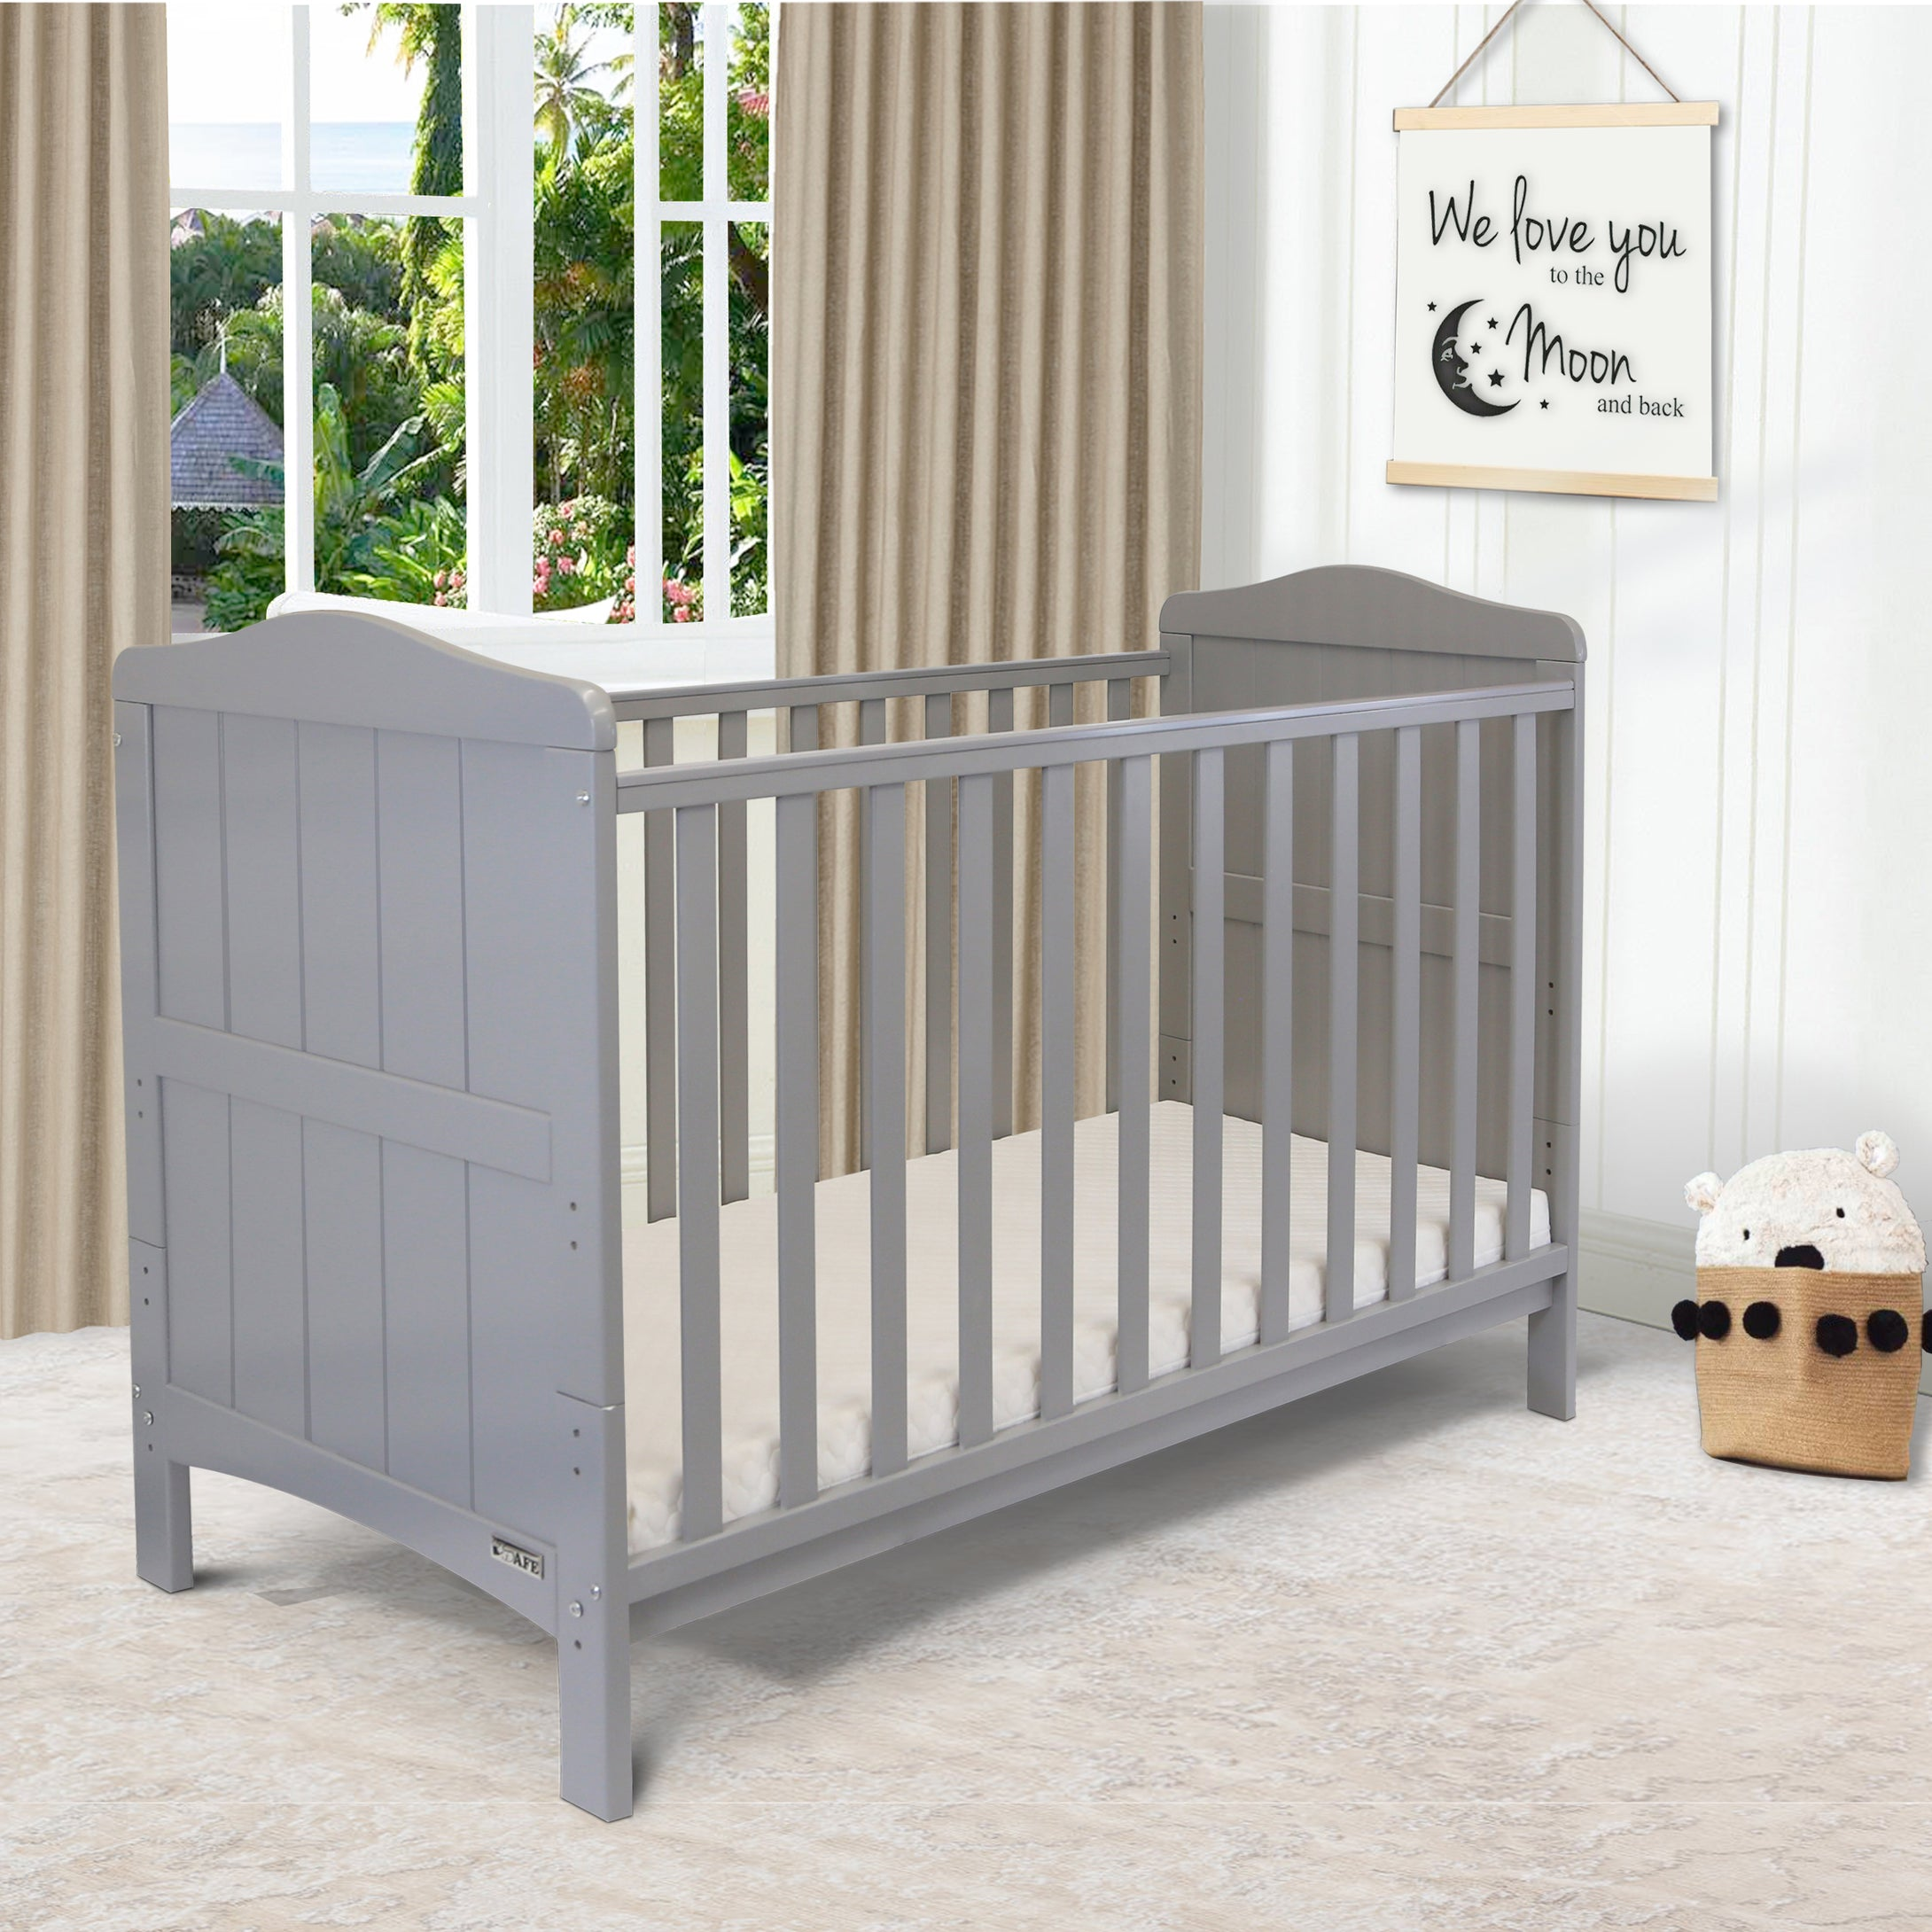 iSafe Baby Cot Bed Toddler Bed - Monika (Grey Including Mattress)